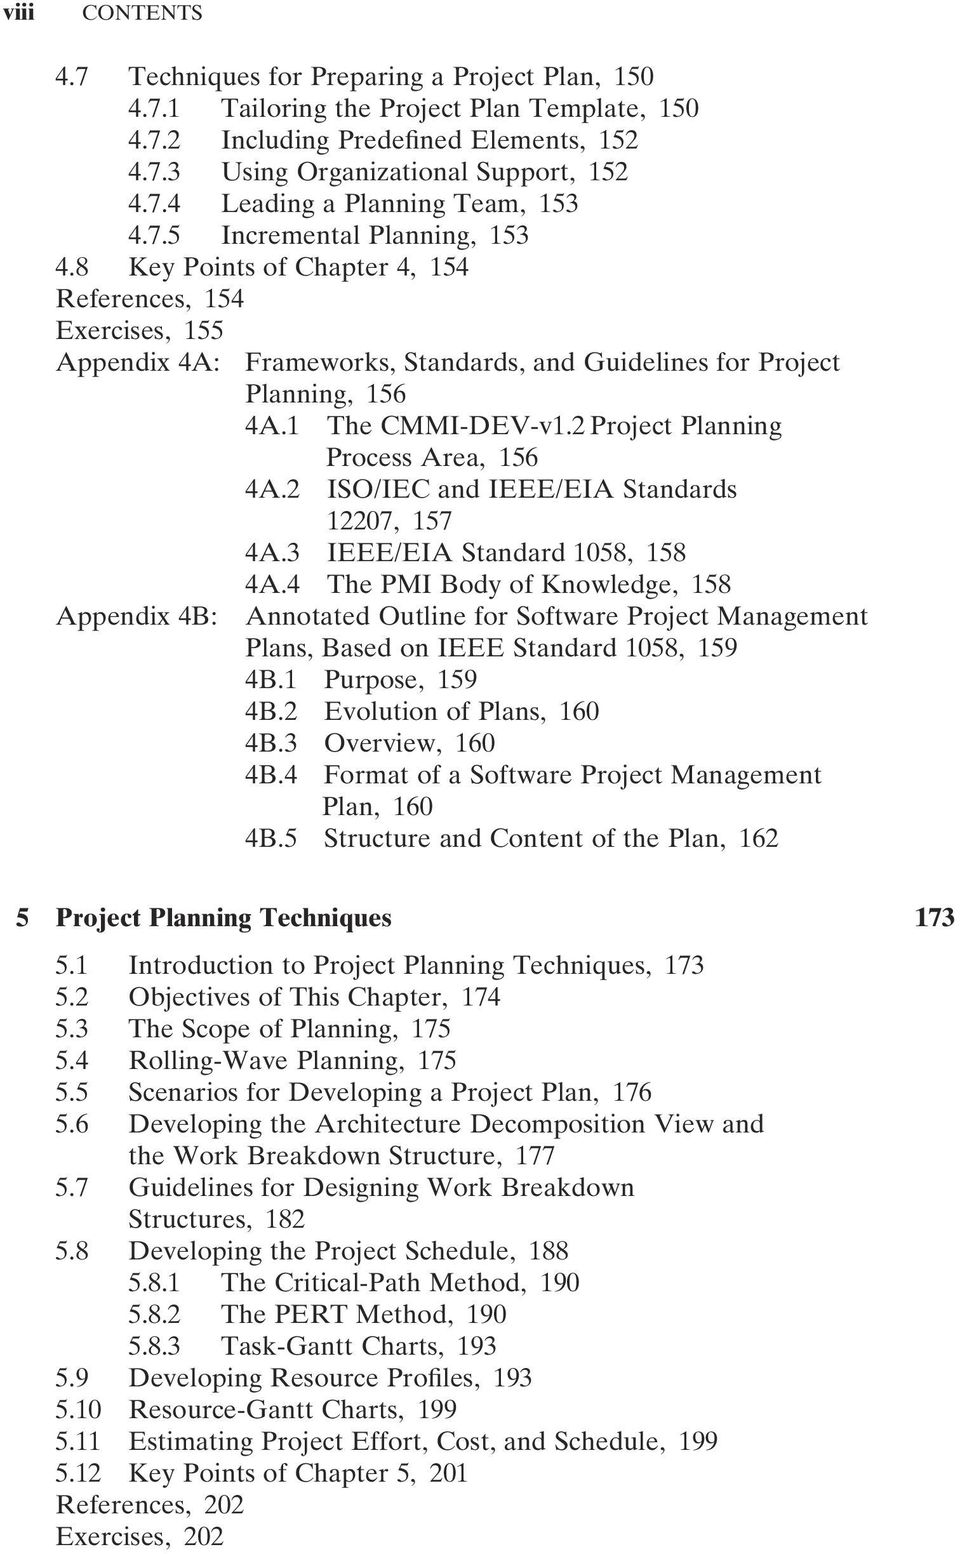 2 Project Planning Process Area, 156 4A.2 ISO/IEC and IEEE/EIA Standards 12207, 157 4A.3 IEEE/EIA Standard 1058, 158 4A.